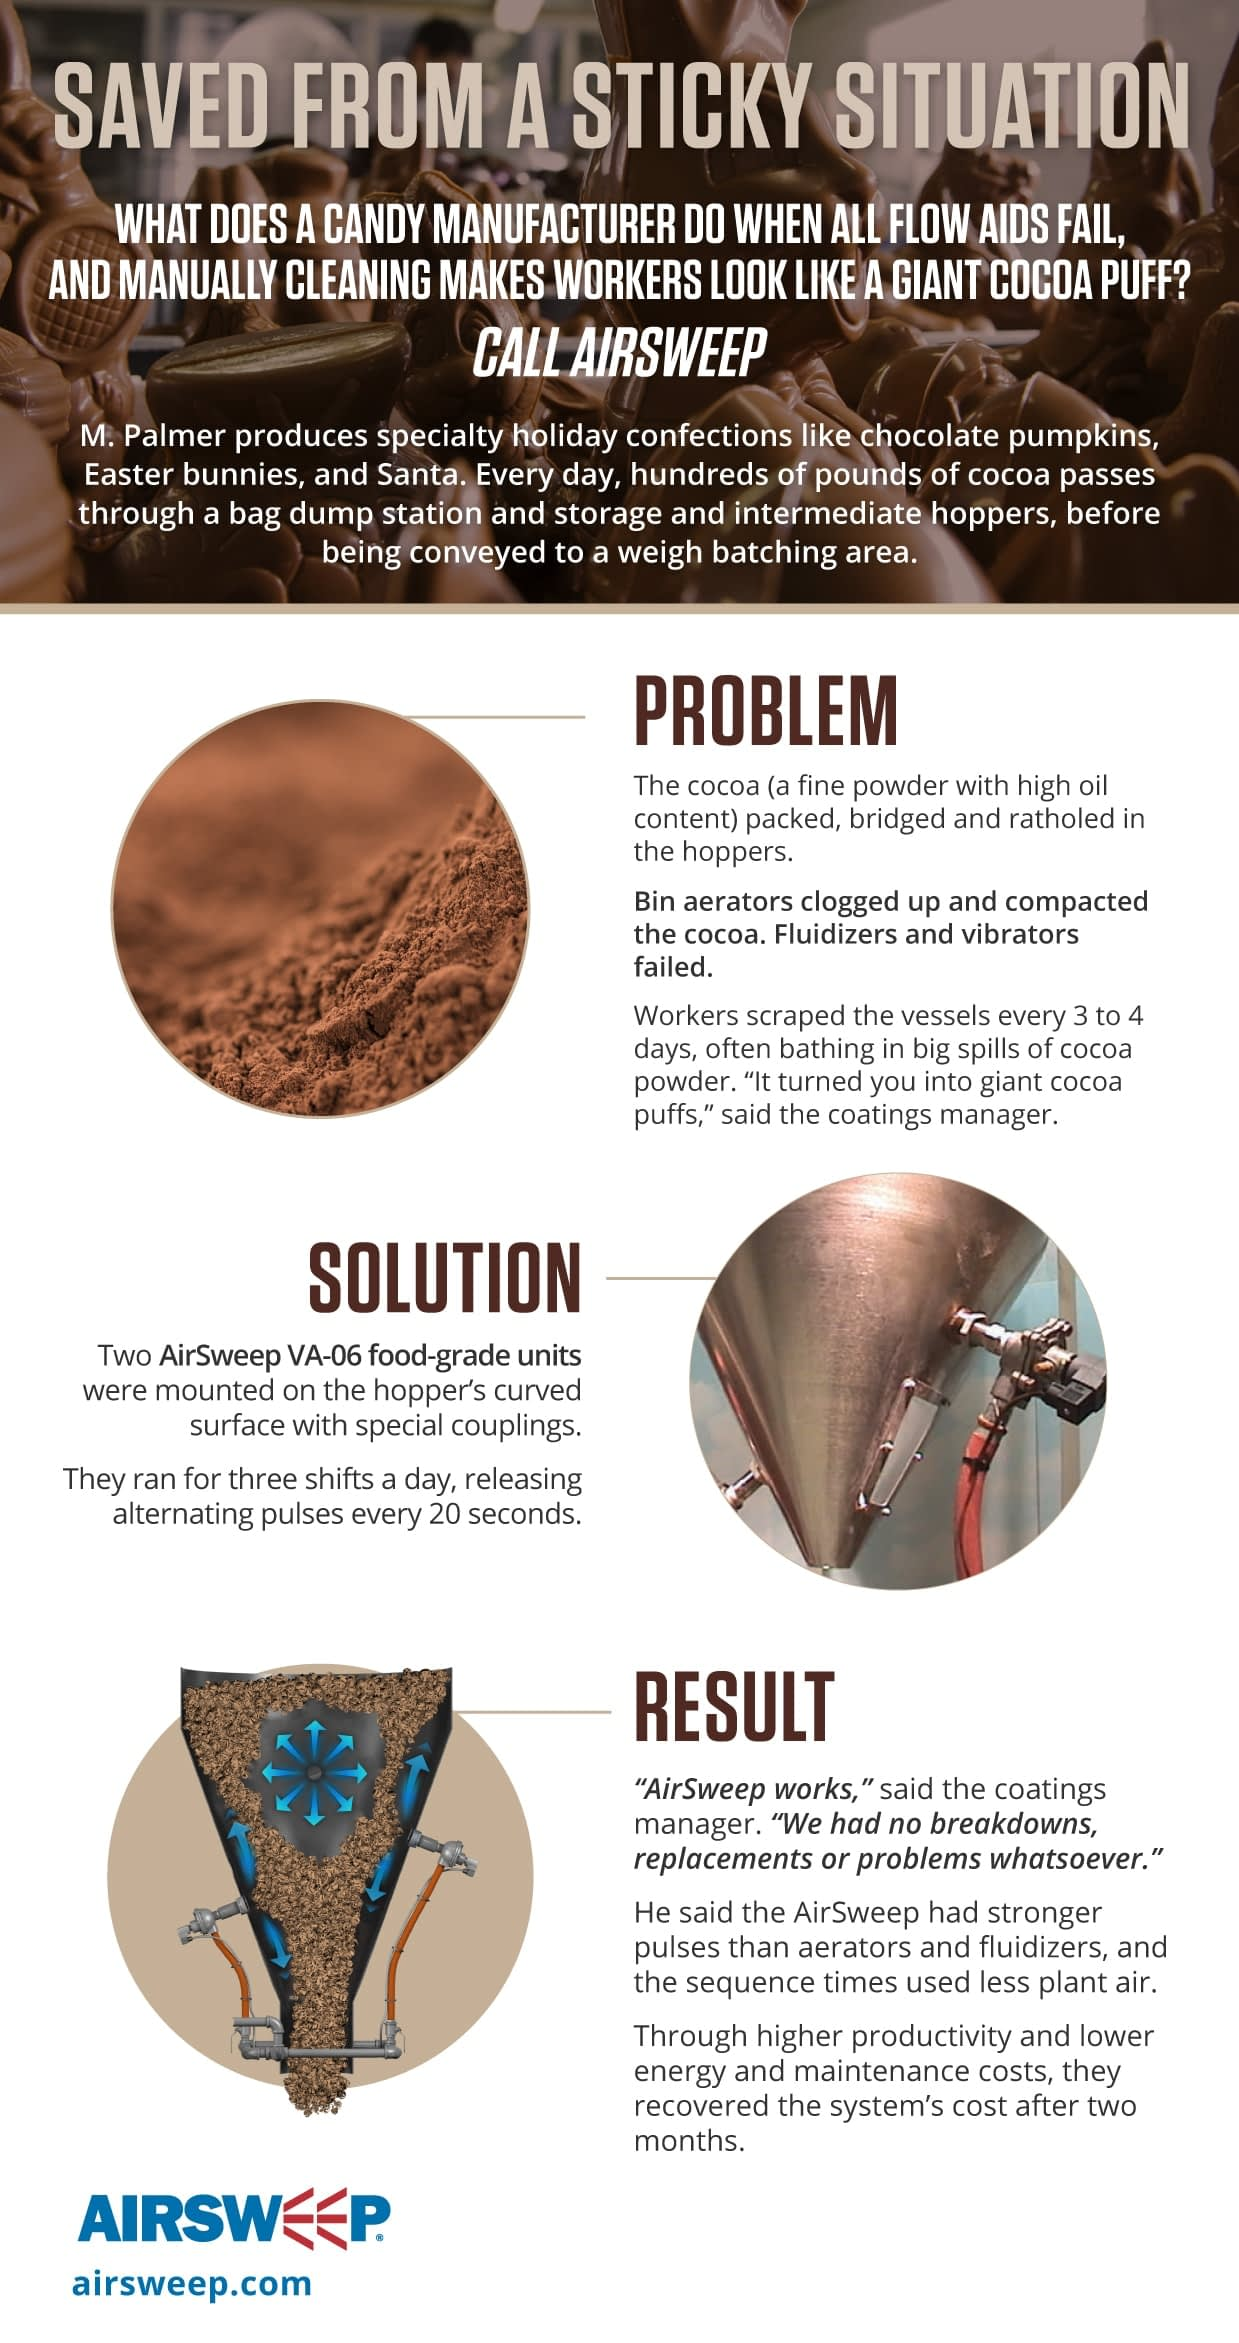 RM Palmer (Cocoa) Infographic